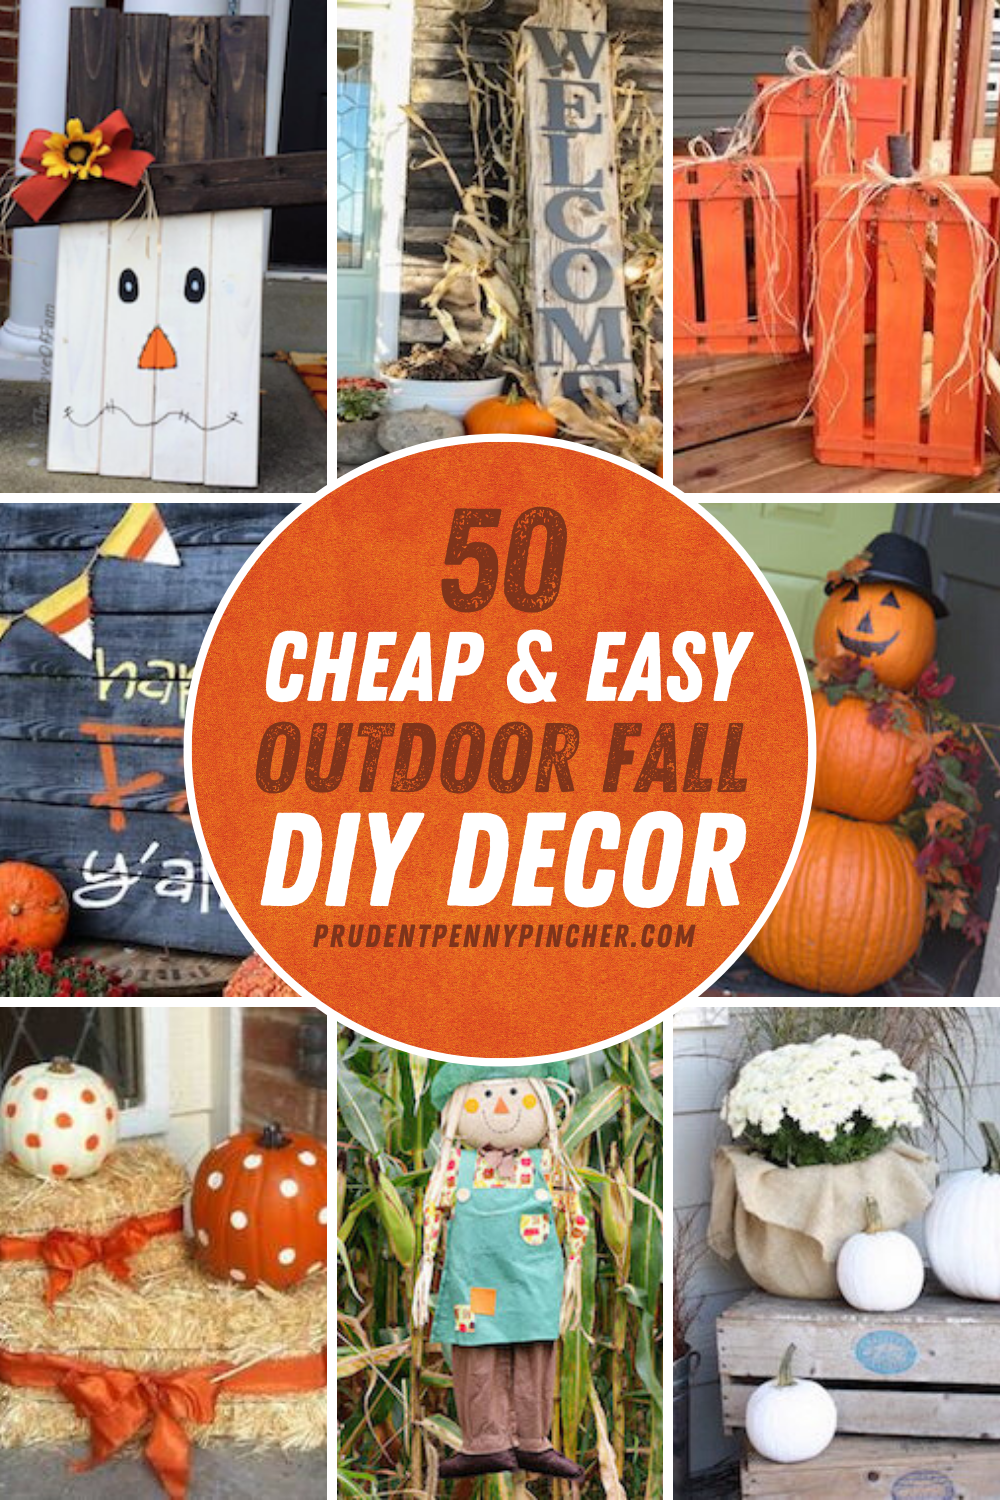 50 Cheap And Easy Diy Outdoor Fall Decorations Diy Holiday Decor Fall Decor Diy Fall Outdoor Decor